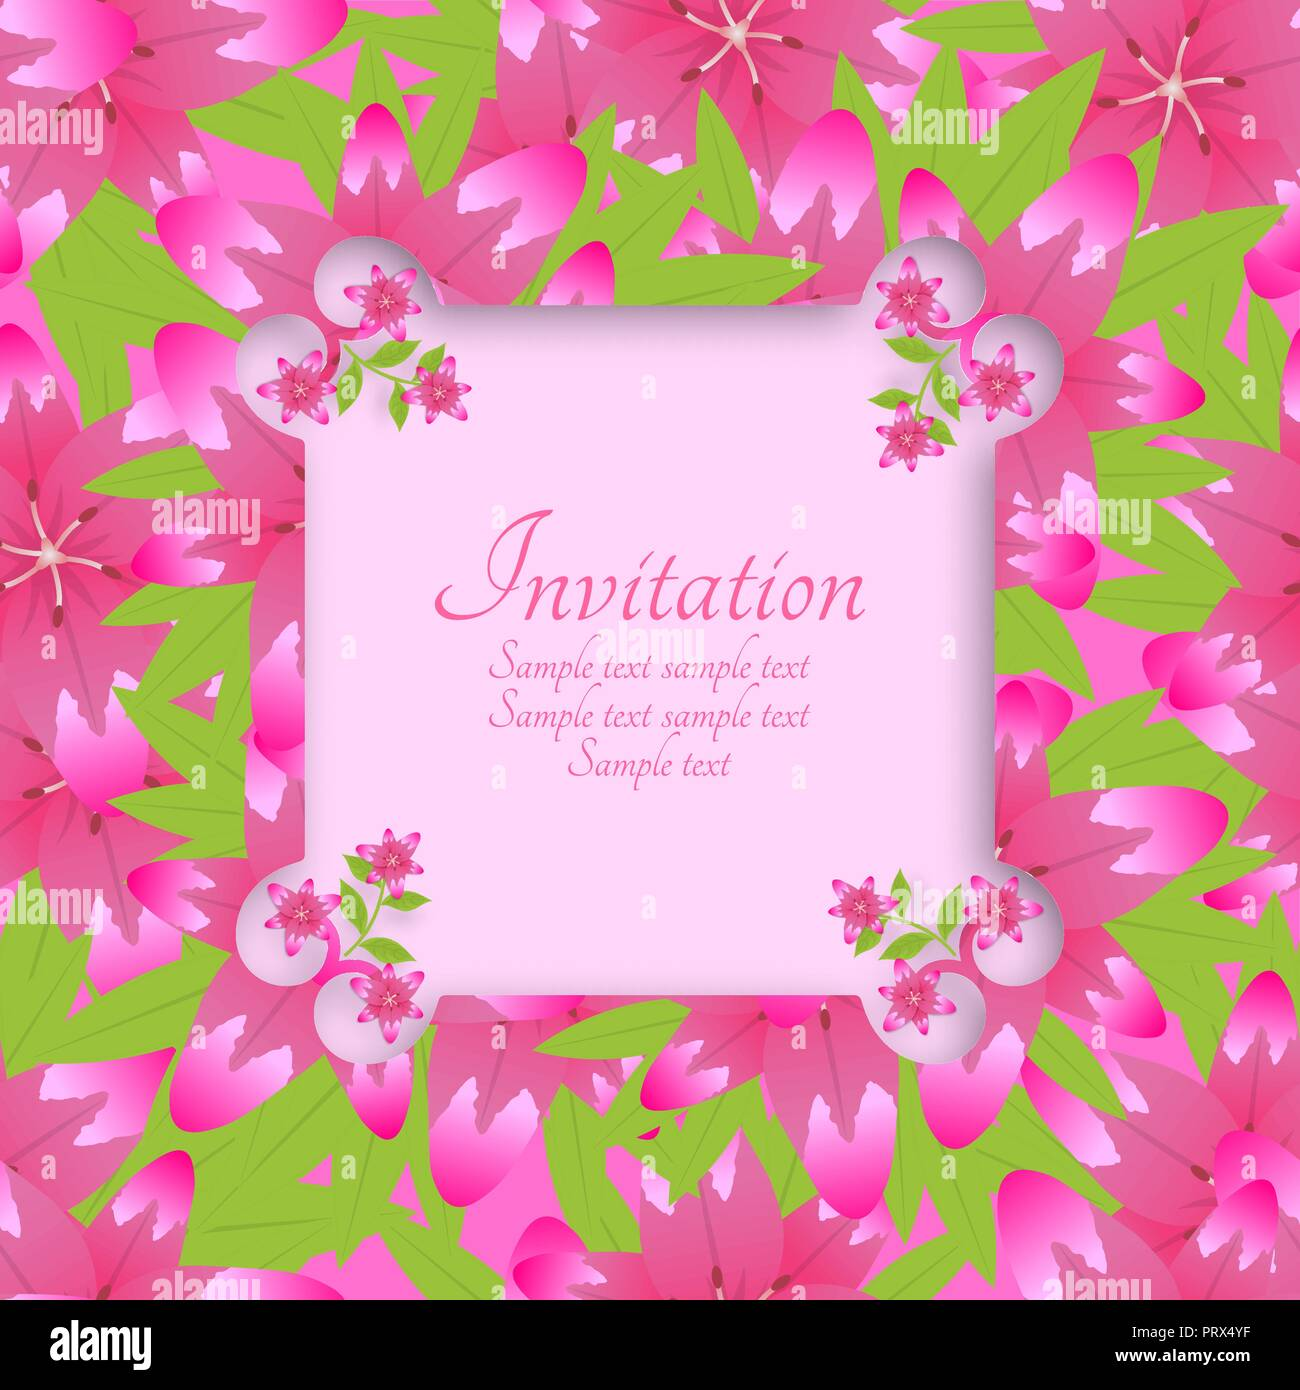 Template of an invitation colourful card with a background from flowers of lilies. Vector illustration. - Stock Image